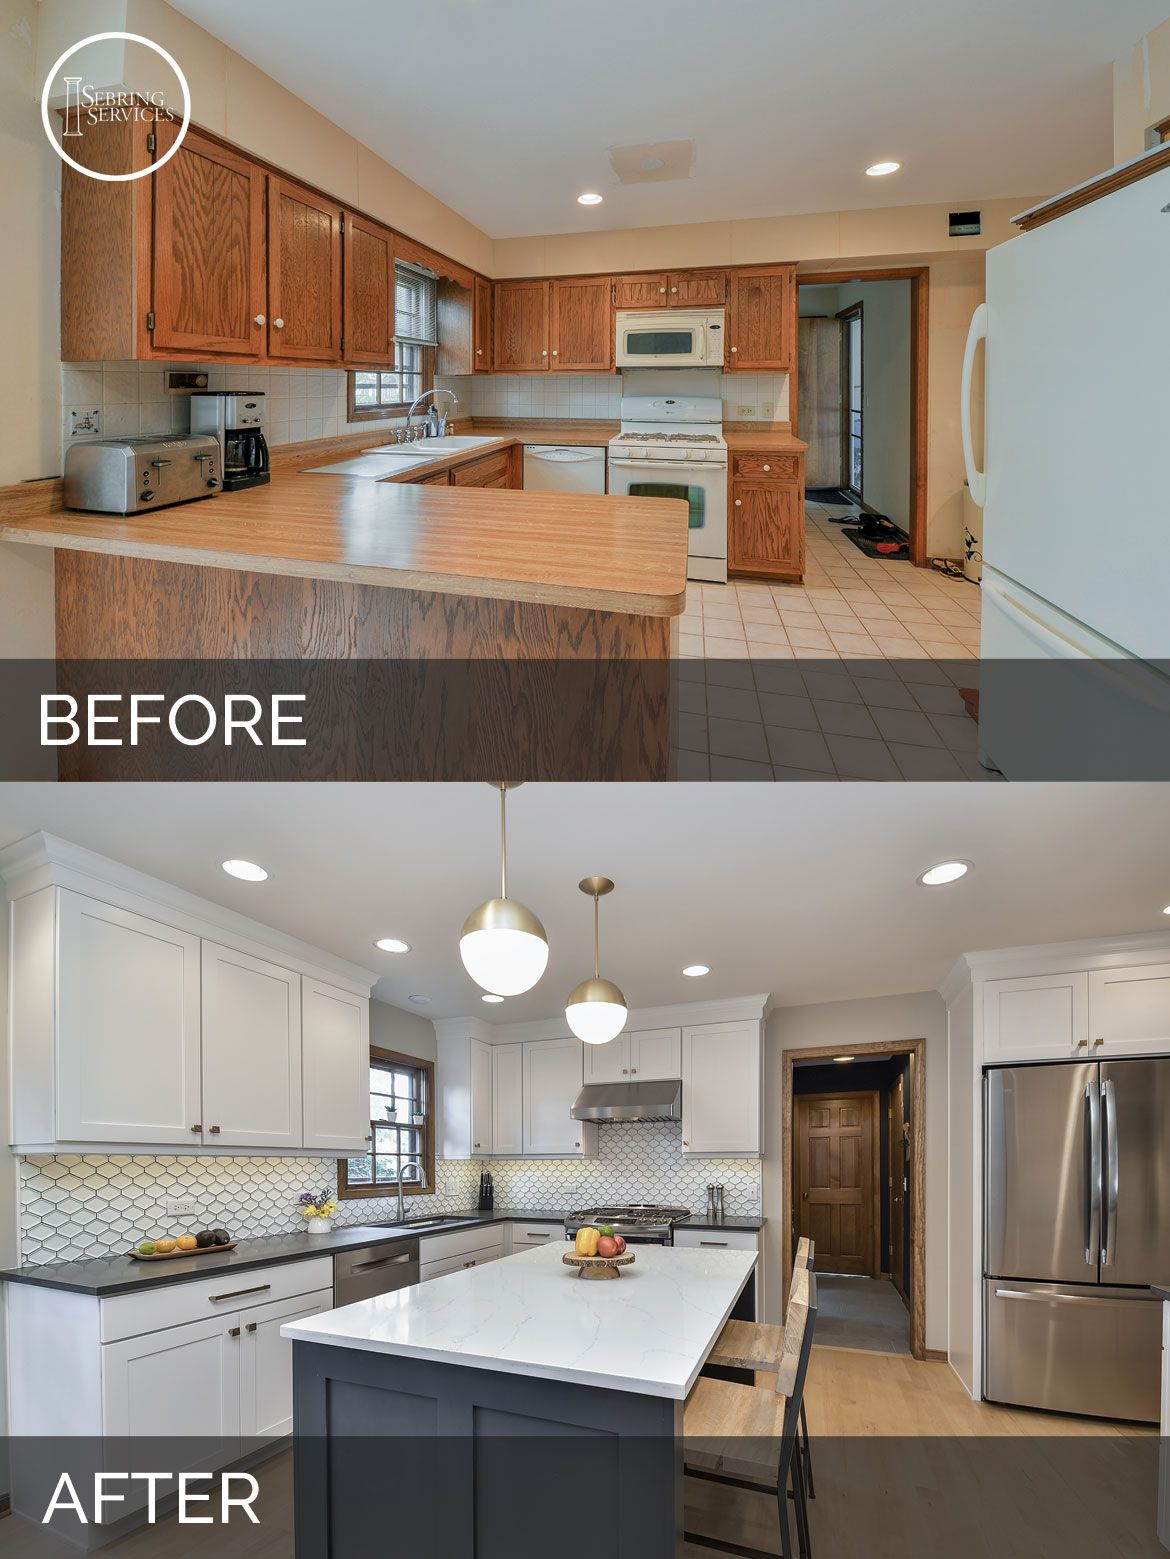 Kitchen Cabinet Remodel Ideas: Justin & Carina's Kitchen Before & After Pictures